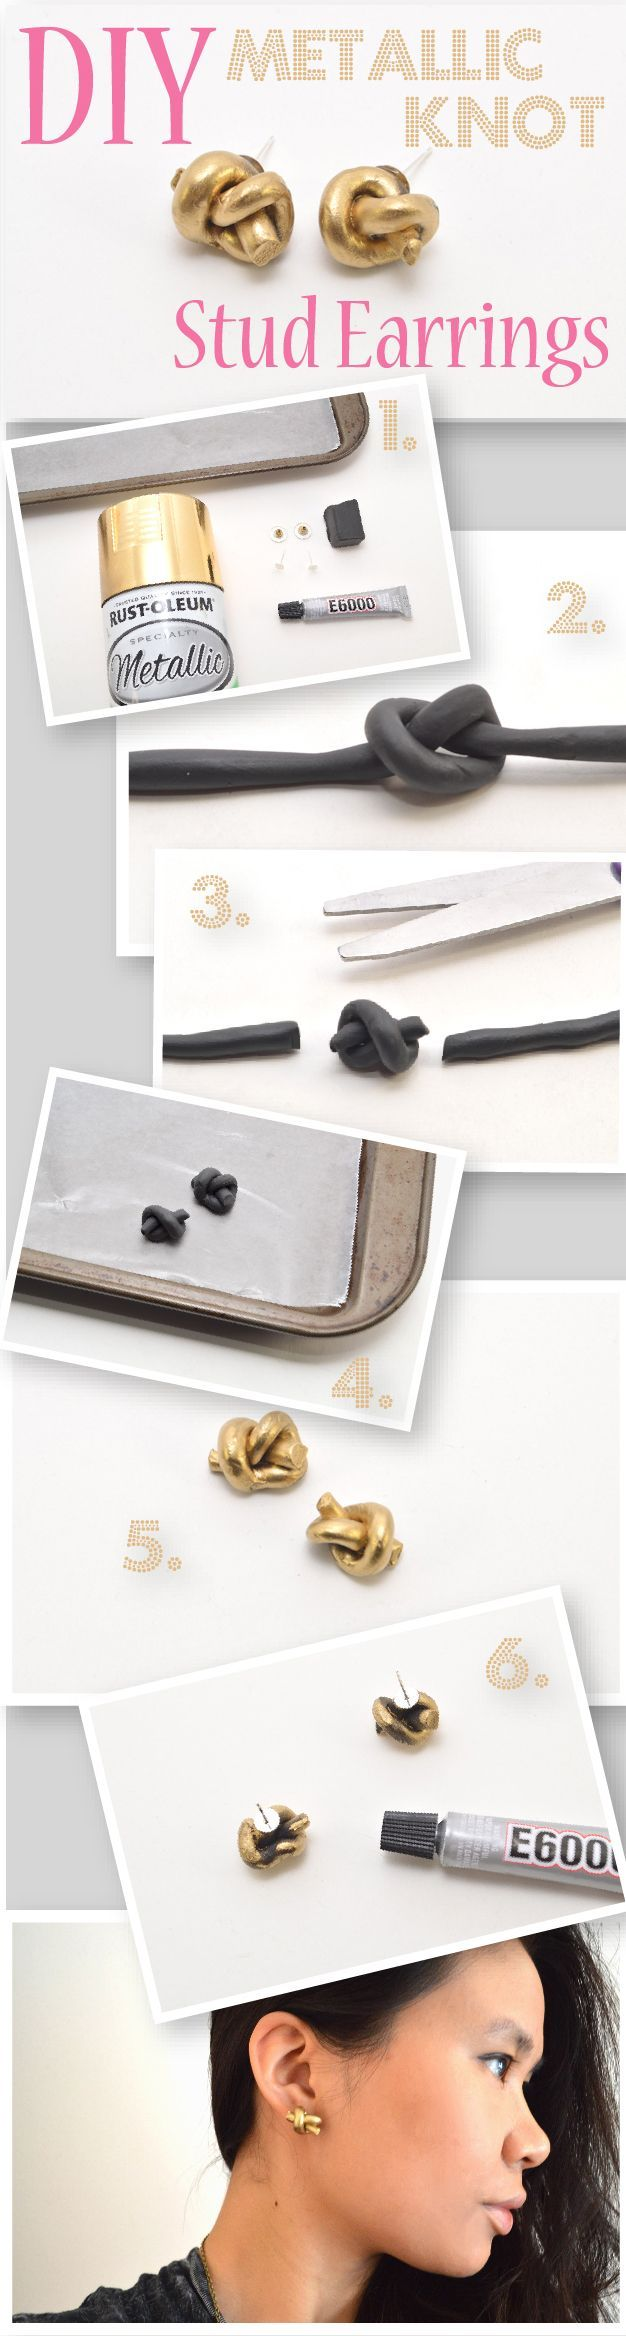 Easy Craft Tutorial: What's not to love about scoring haute styles on the cheap? Follow these step-by-step instructions for creating faux metallic earrings, and forgo expensive gold knots in favor of spray-painted clay. #jewelry #diyearrings @ehow